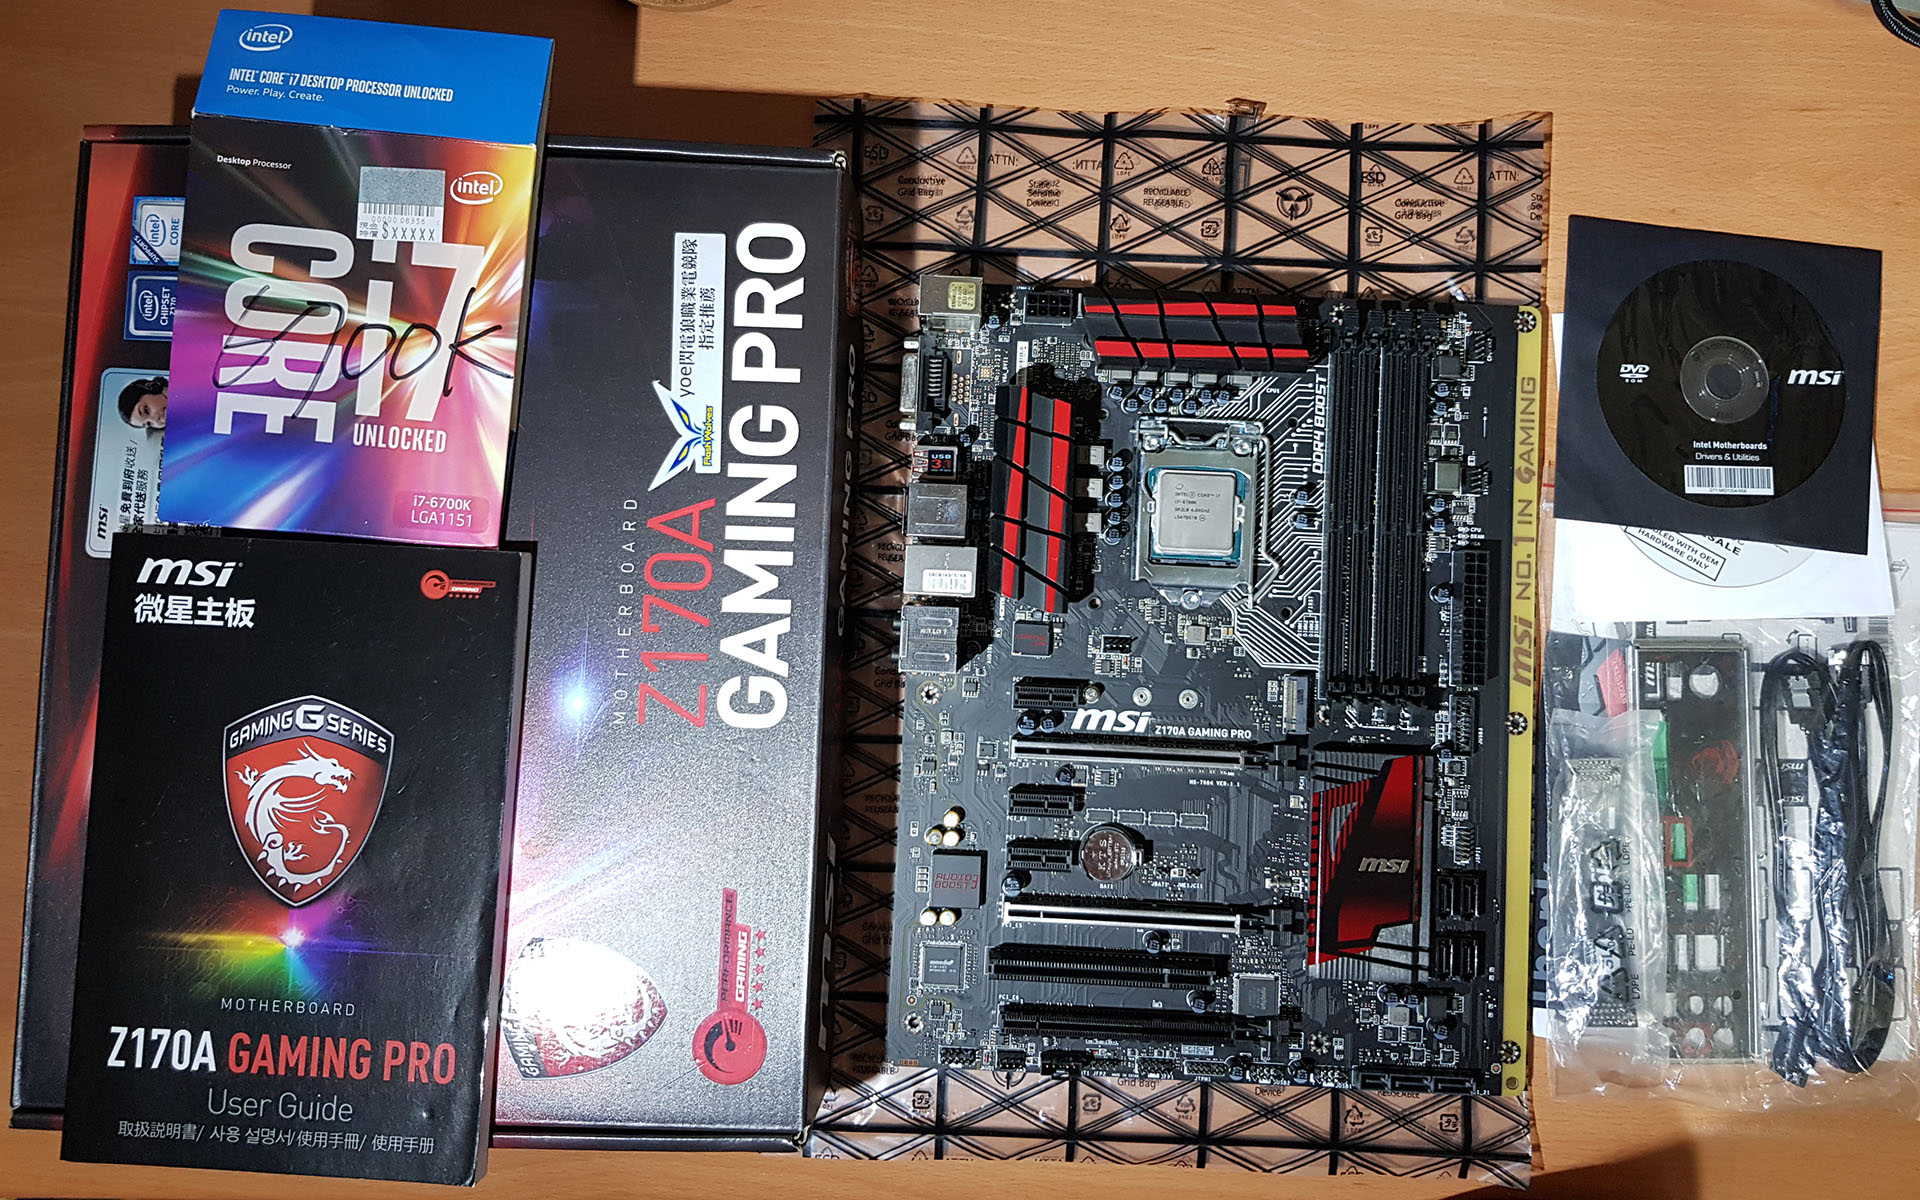 Mobo cpu and parts.jpg